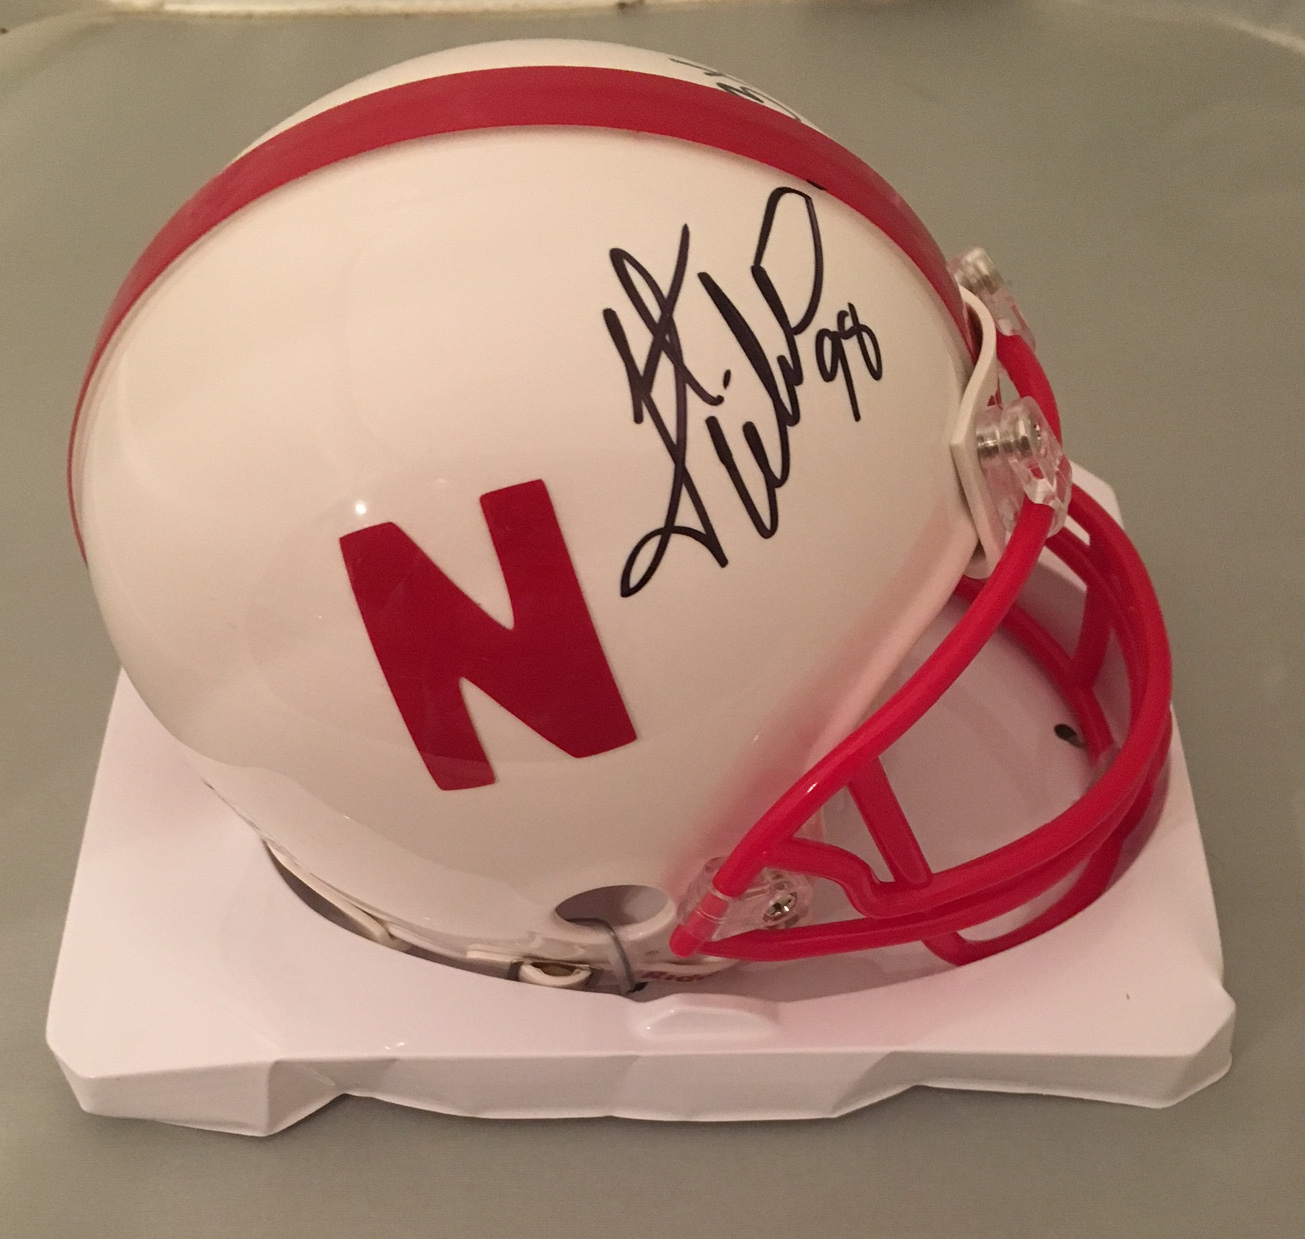 Grant Wistrom Autographed Nebraska Signed White Football Mini Helmet 3 X CHAMPS 2 Former Nebraska 3 x NCAA Champion and College Football Hall of Famer Grant Wistrom has signed this officially licensed Nebraska mini helmet and written 3 x NATL CHAMP. Autographed on 9/29/17. Item will come with a photo of Grant signing this type of item and a COA from Powers Sports Memorabilia who conducted the signing.  You will receive EXACT item shown.